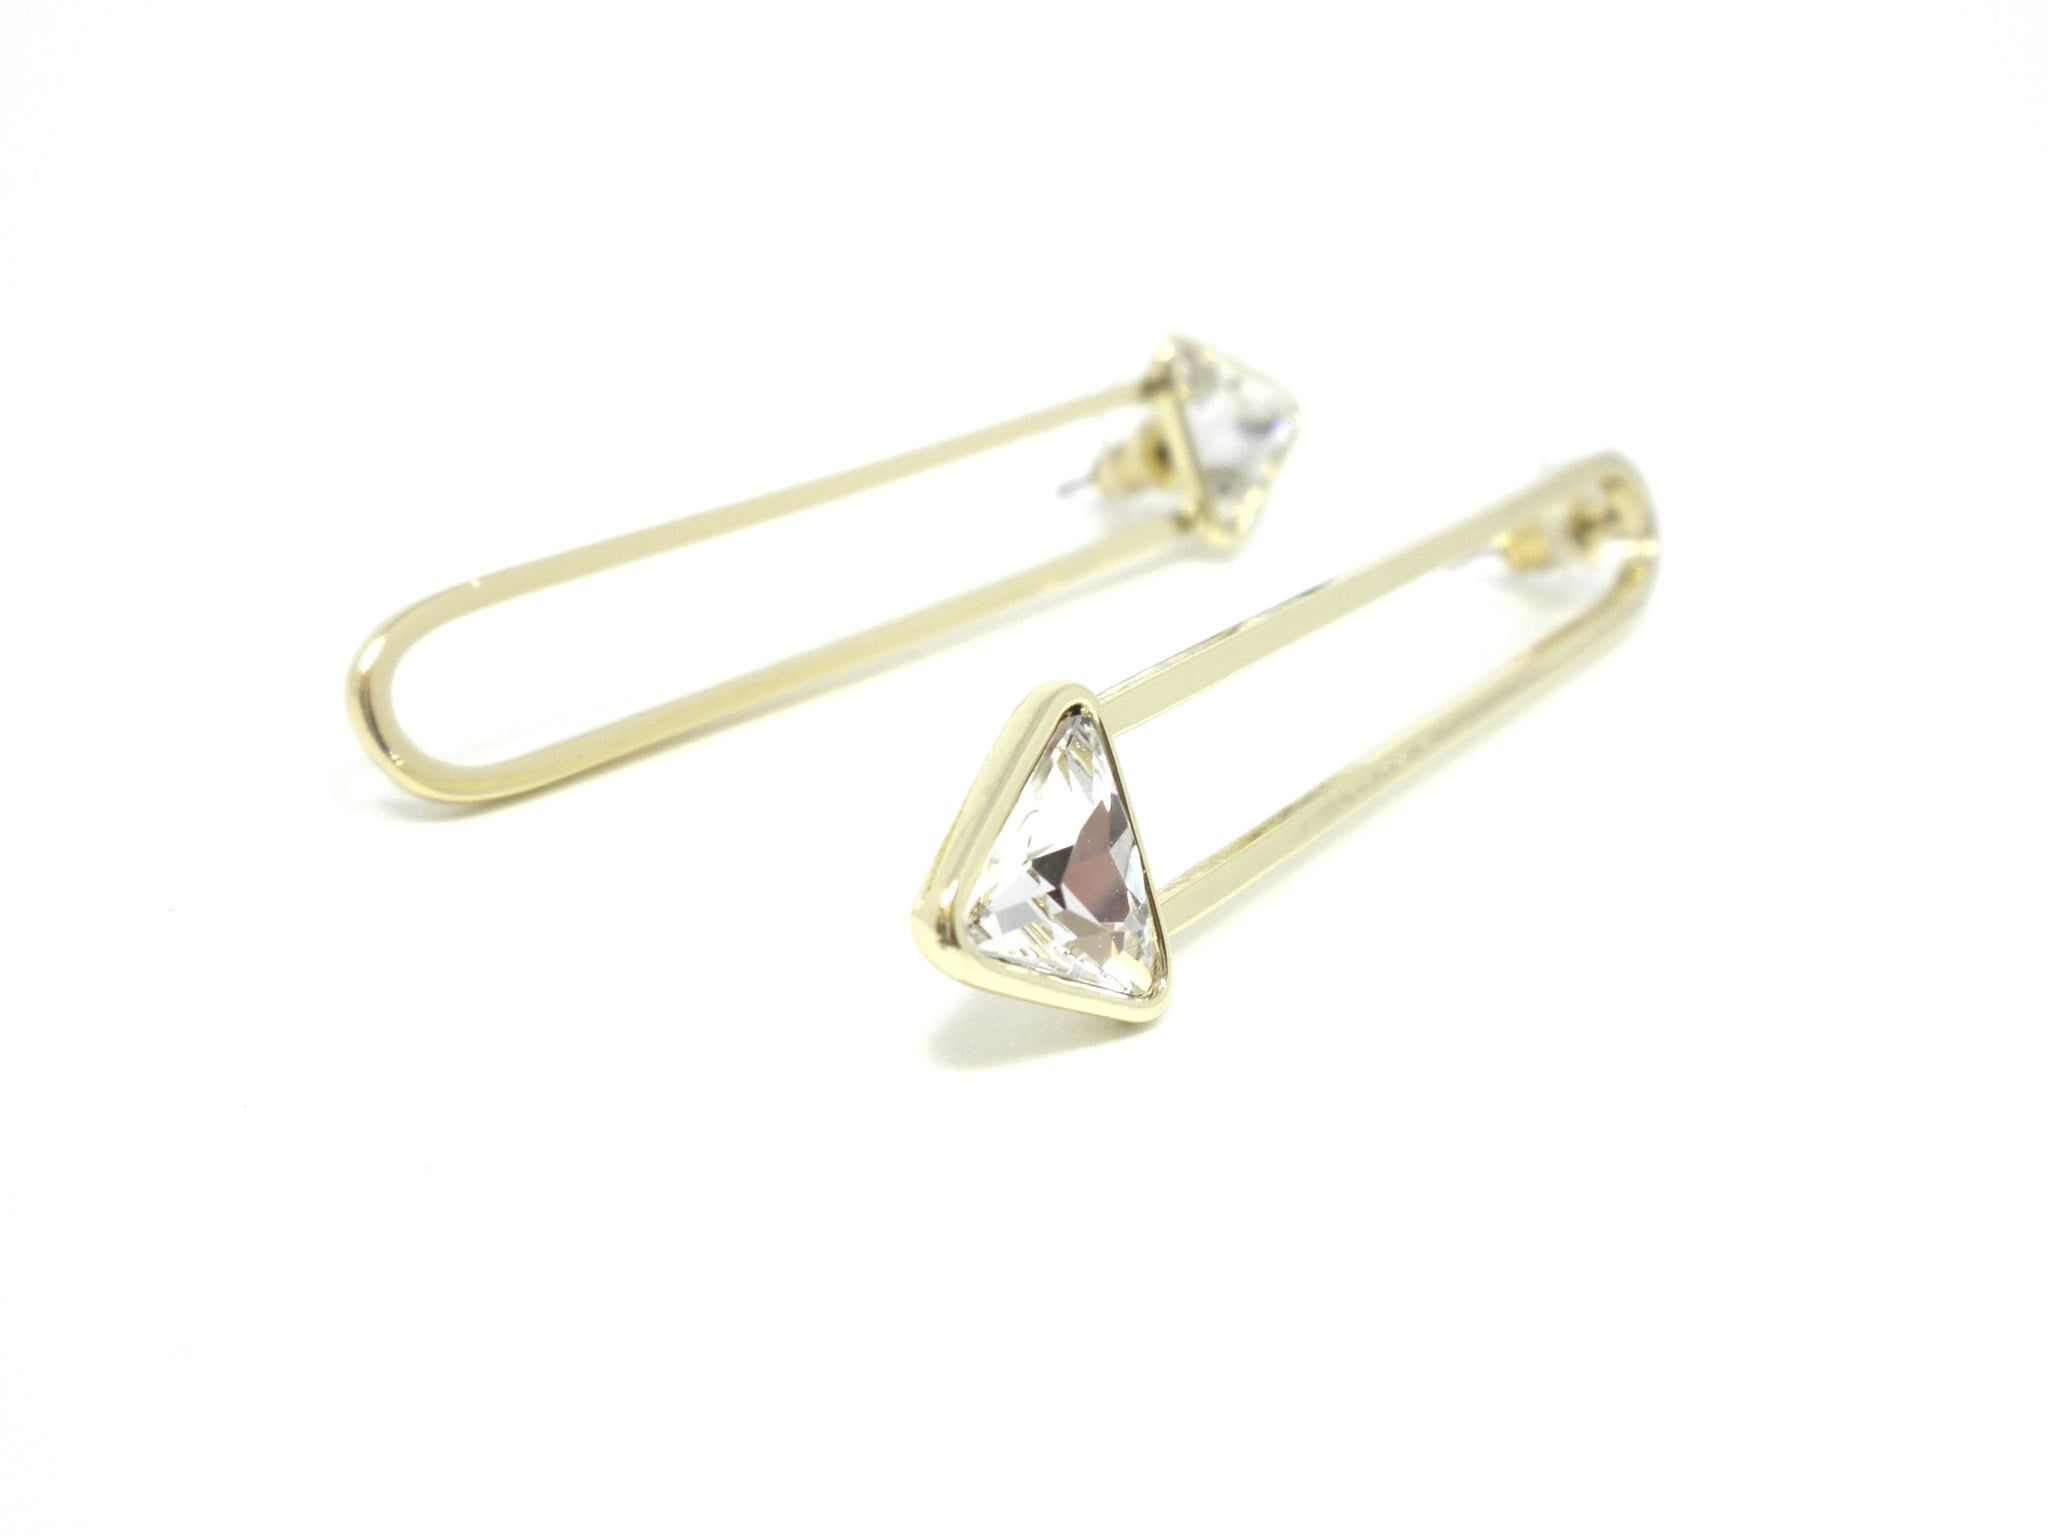 Stella & Ruby Gold Arrow Earrings - Donated From The Designer - The Fashion Foundation